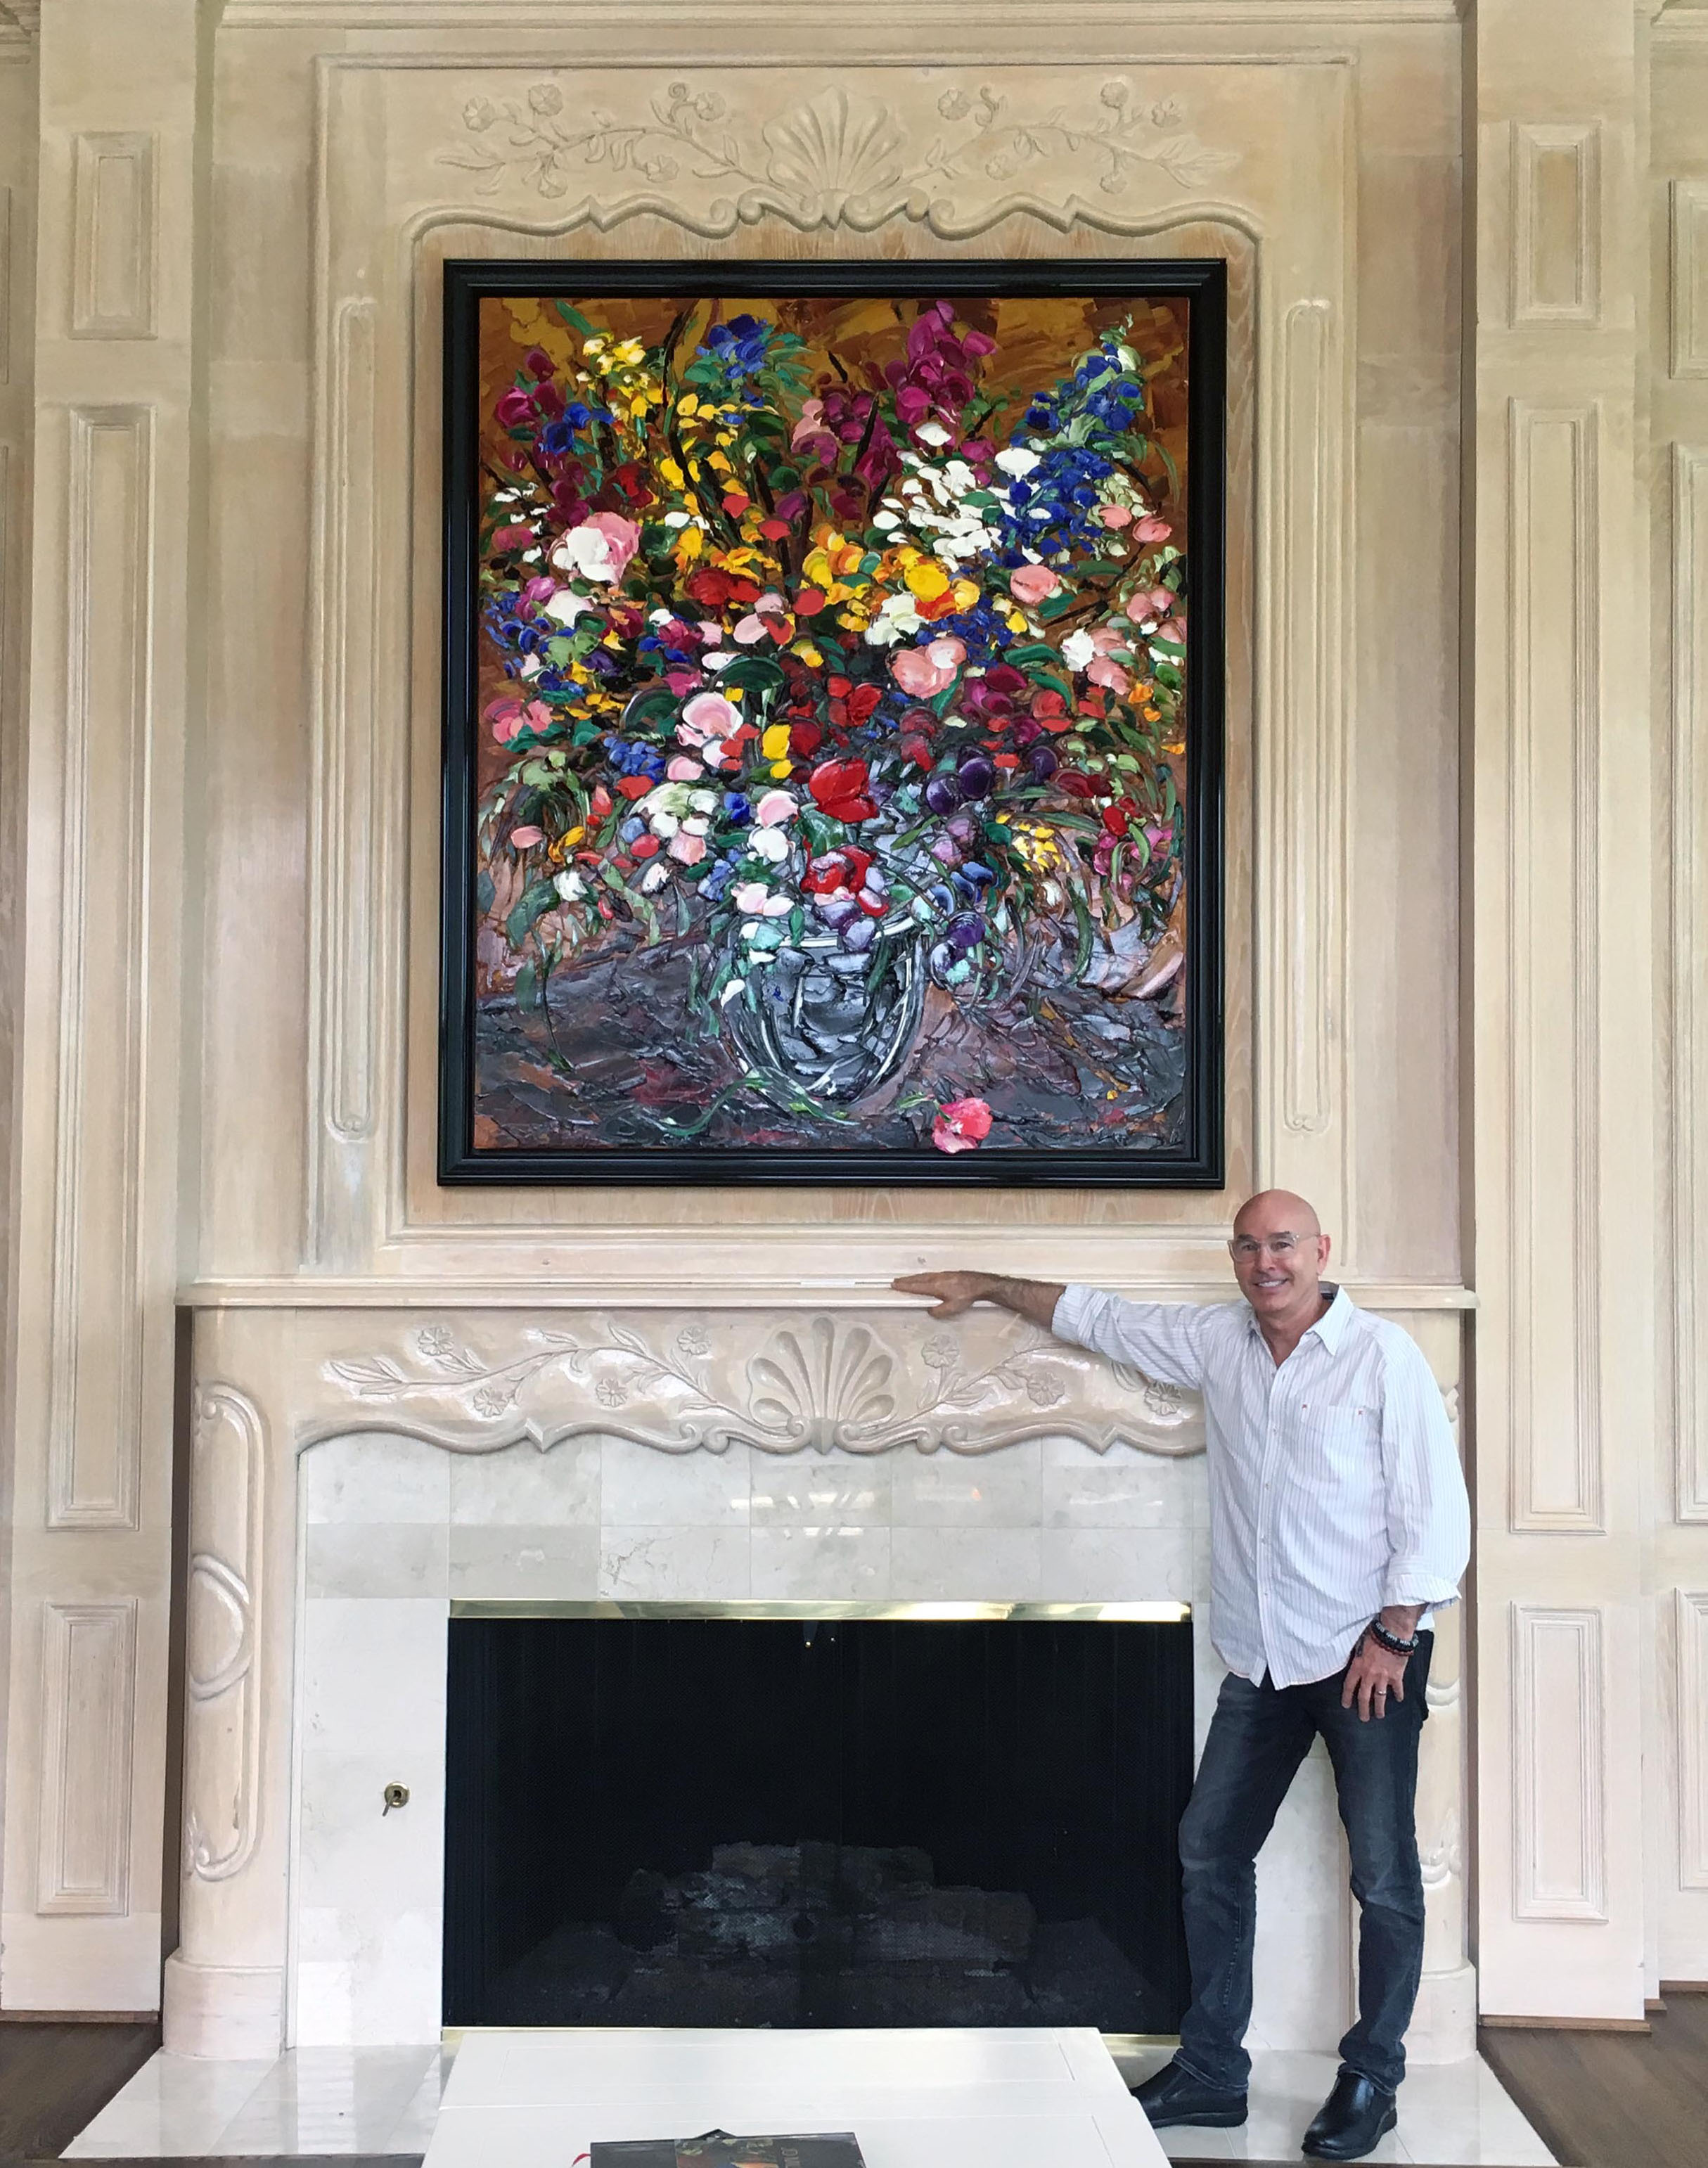 72 x 60 window prefabricated filereflectionist artist jd miller pictured with his 3d oil painting